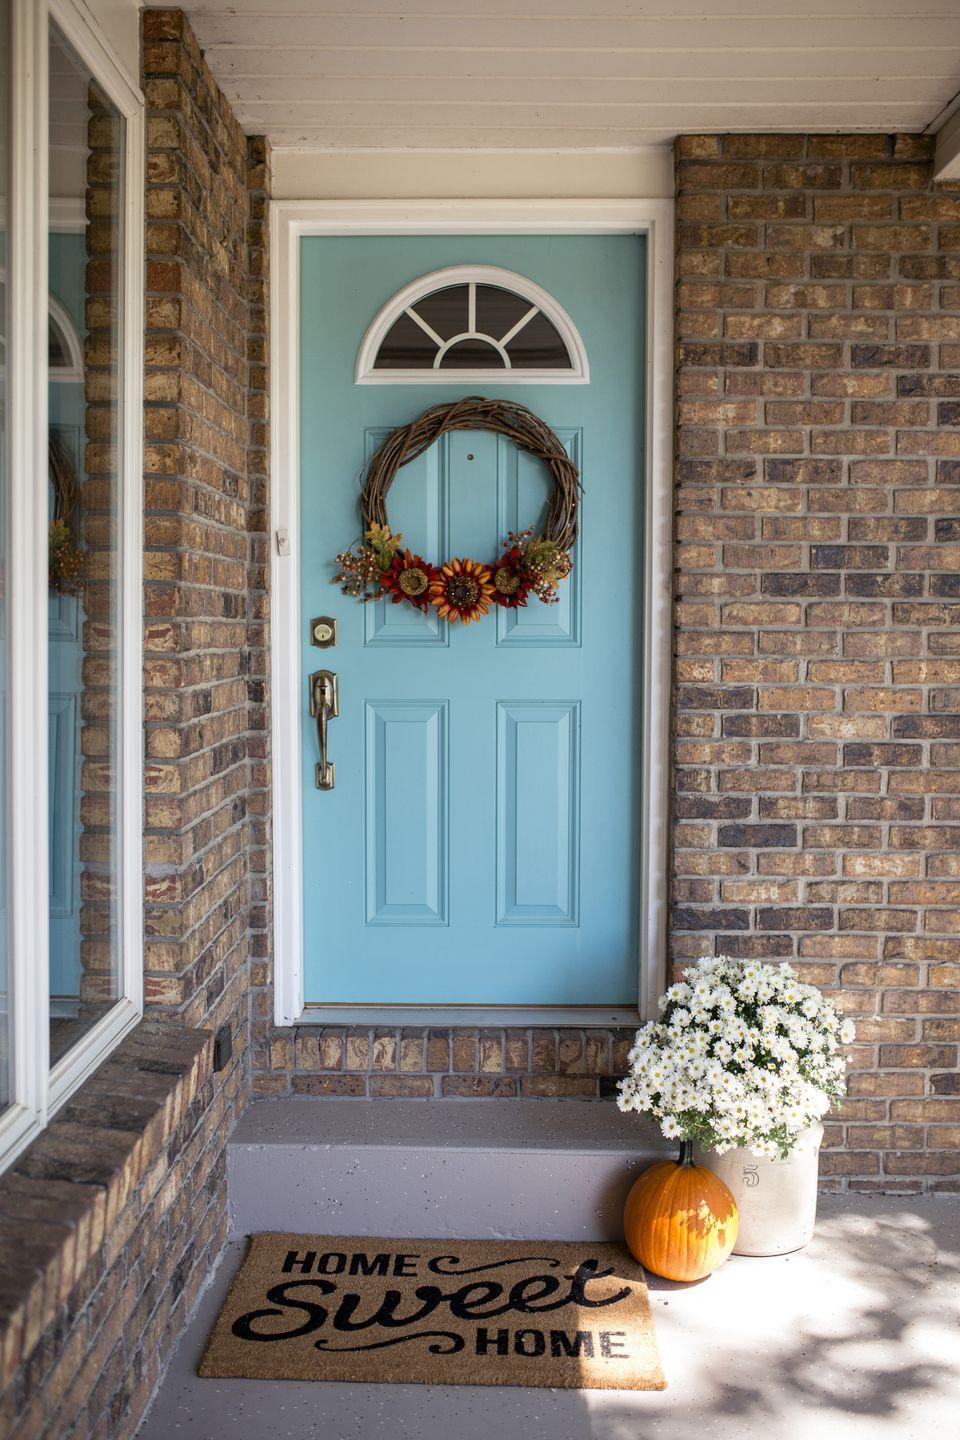 """<p>For a door that's already a conversation-starter, go for a floral wreath that works well past Halloween. Place a pumpkin on the floor next to pretty potted florals to round out your Halloween set-up.<br><br><a class=""""link rapid-noclick-resp"""" href=""""https://go.redirectingat.com?id=74968X1596630&url=https%3A%2F%2Fwww.wayfair.com%2Fdecor-pillows%2Fpdp%2Faugust-grove-decorative-20-fabric-wreath-aggr7160.html&sref=https%3A%2F%2Fwww.goodhousekeeping.com%2Fholidays%2Fhalloween-ideas%2Fg32948621%2Fhalloween-door-decorations%2F"""" rel=""""nofollow noopener"""" target=""""_blank"""" data-ylk=""""slk:SHOP DECORATIVE WREATH"""">SHOP DECORATIVE WREATH</a></p>"""